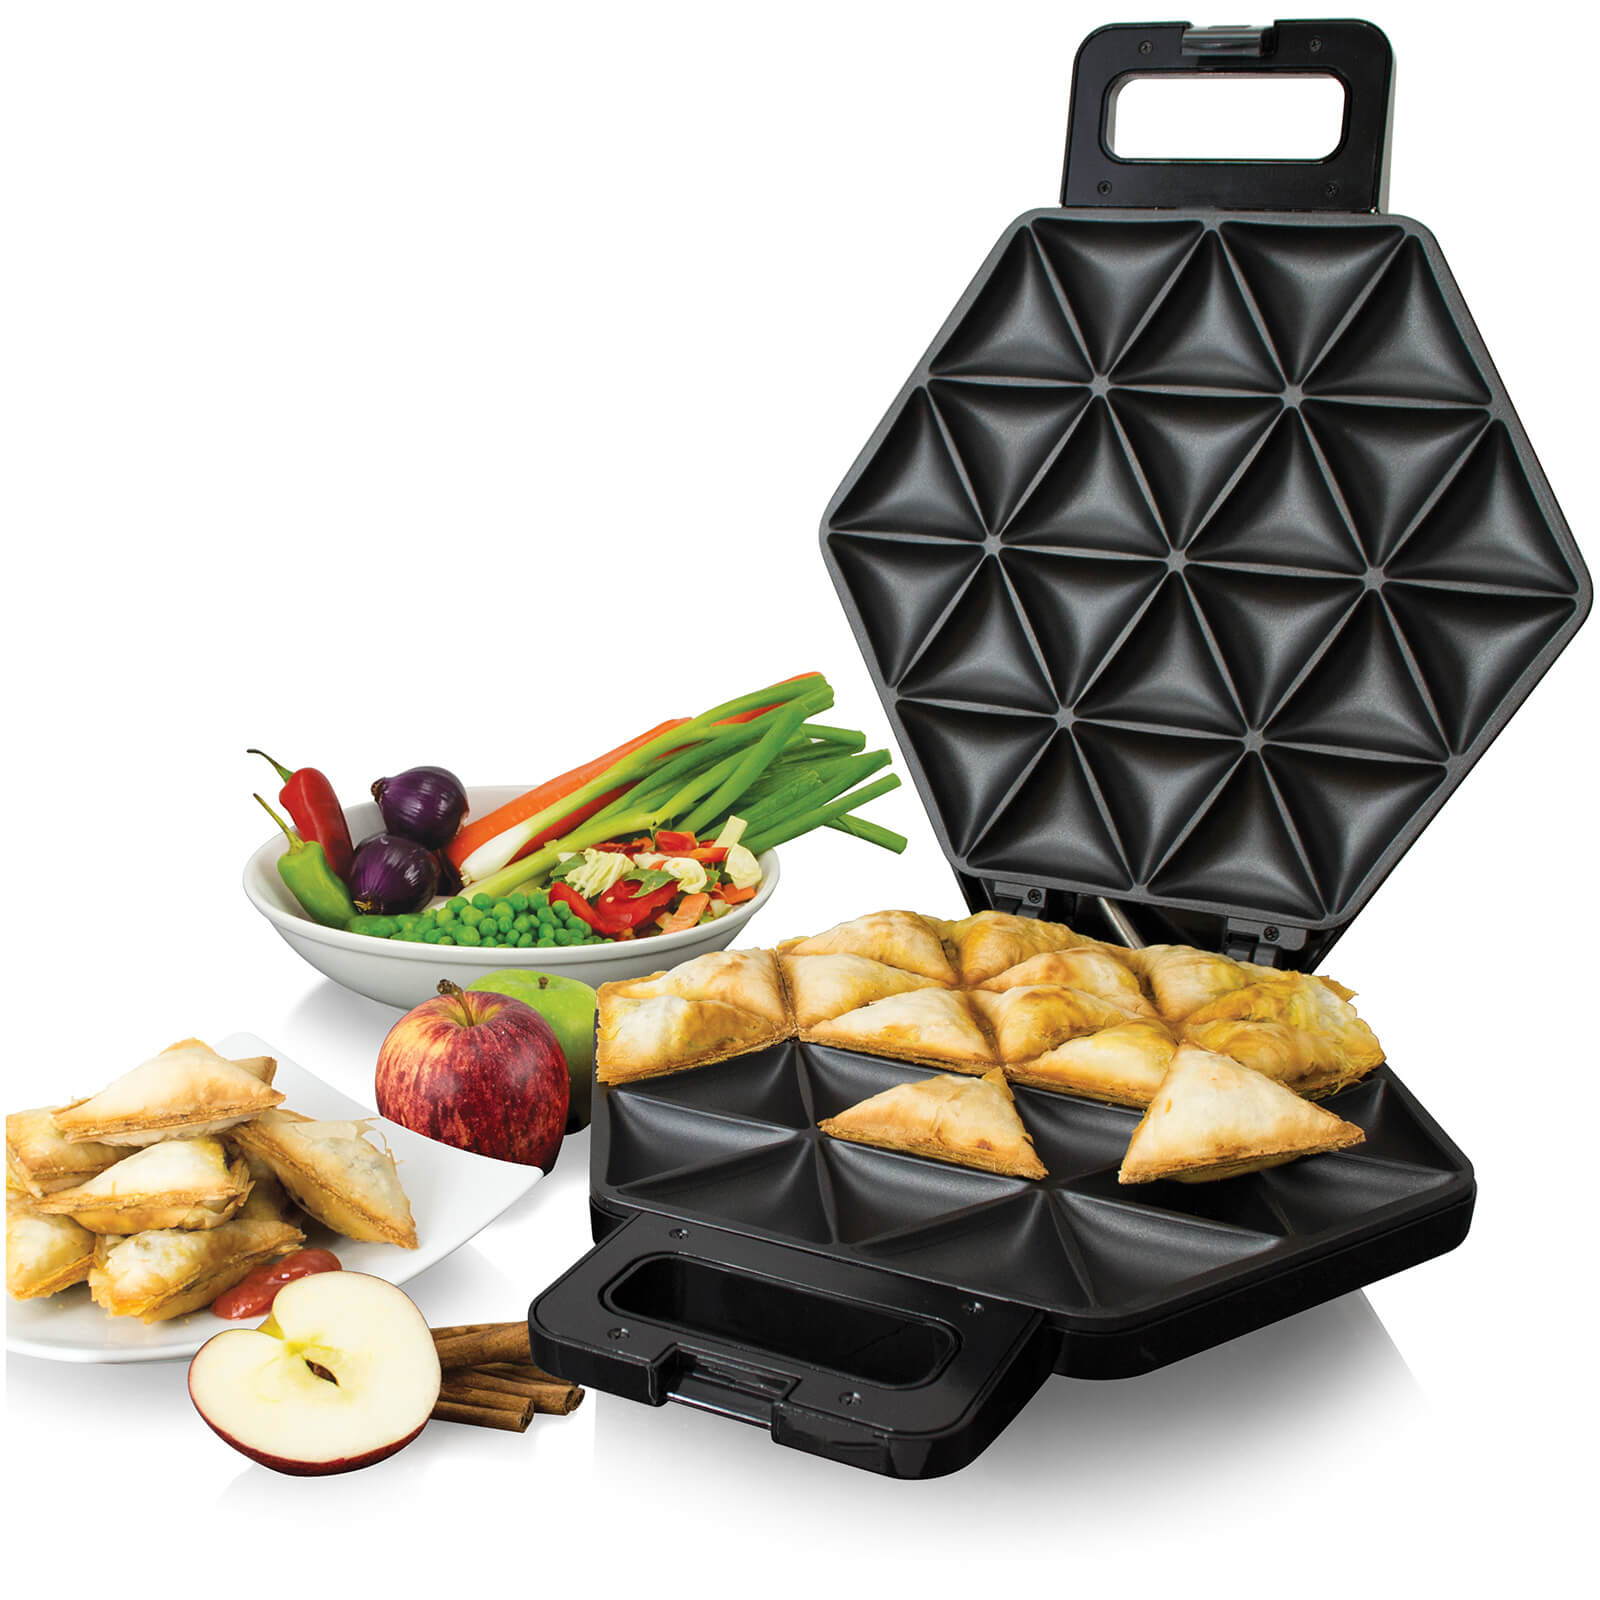 SMART Samosa Maker - Black